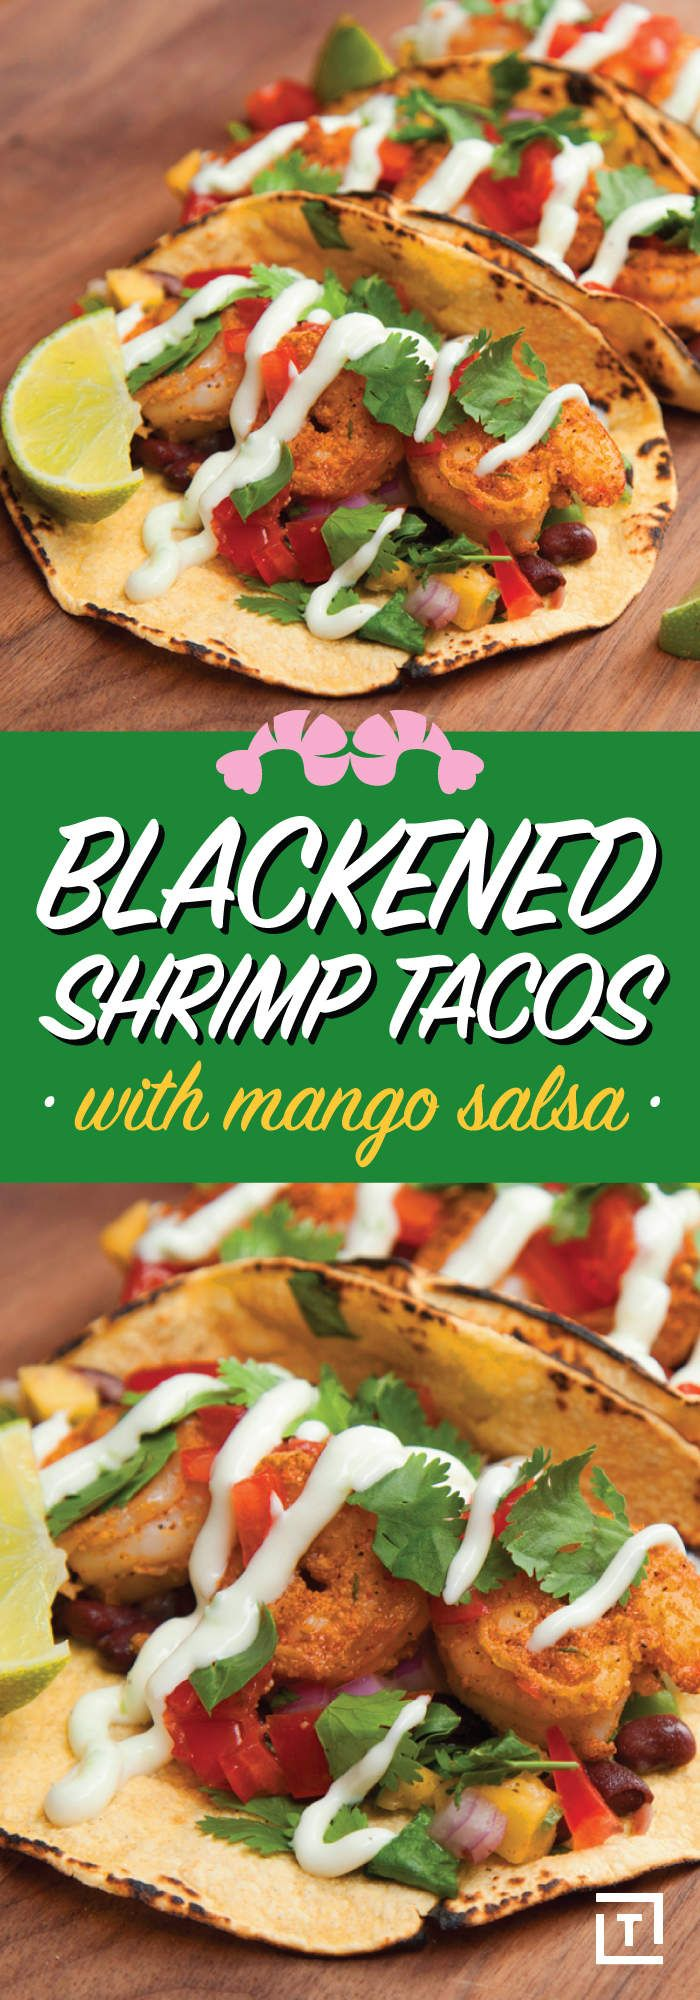 These Blackened Shrimp Tacos with Mango Salsa Are Drool-Worthy